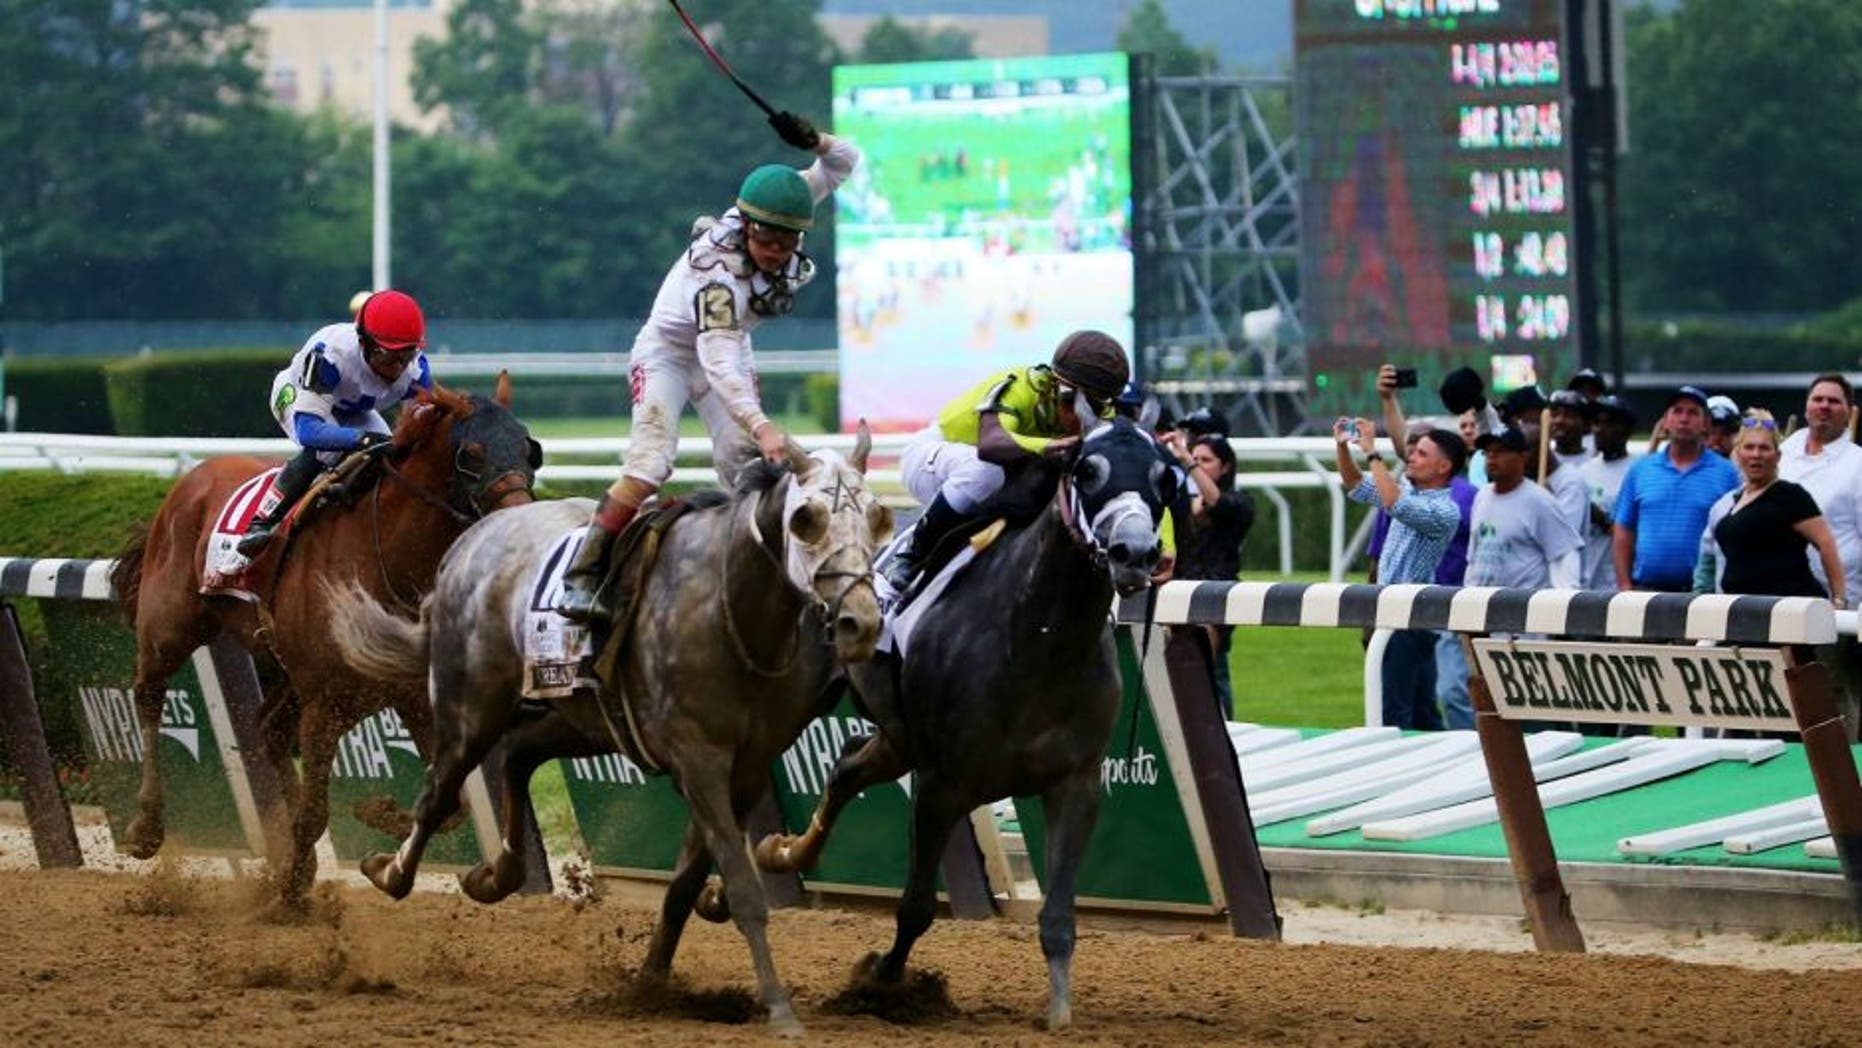 during the The 148th running of the Belmont Stakes at Belmont Park on June 11, 2016 in Elmont, New York.